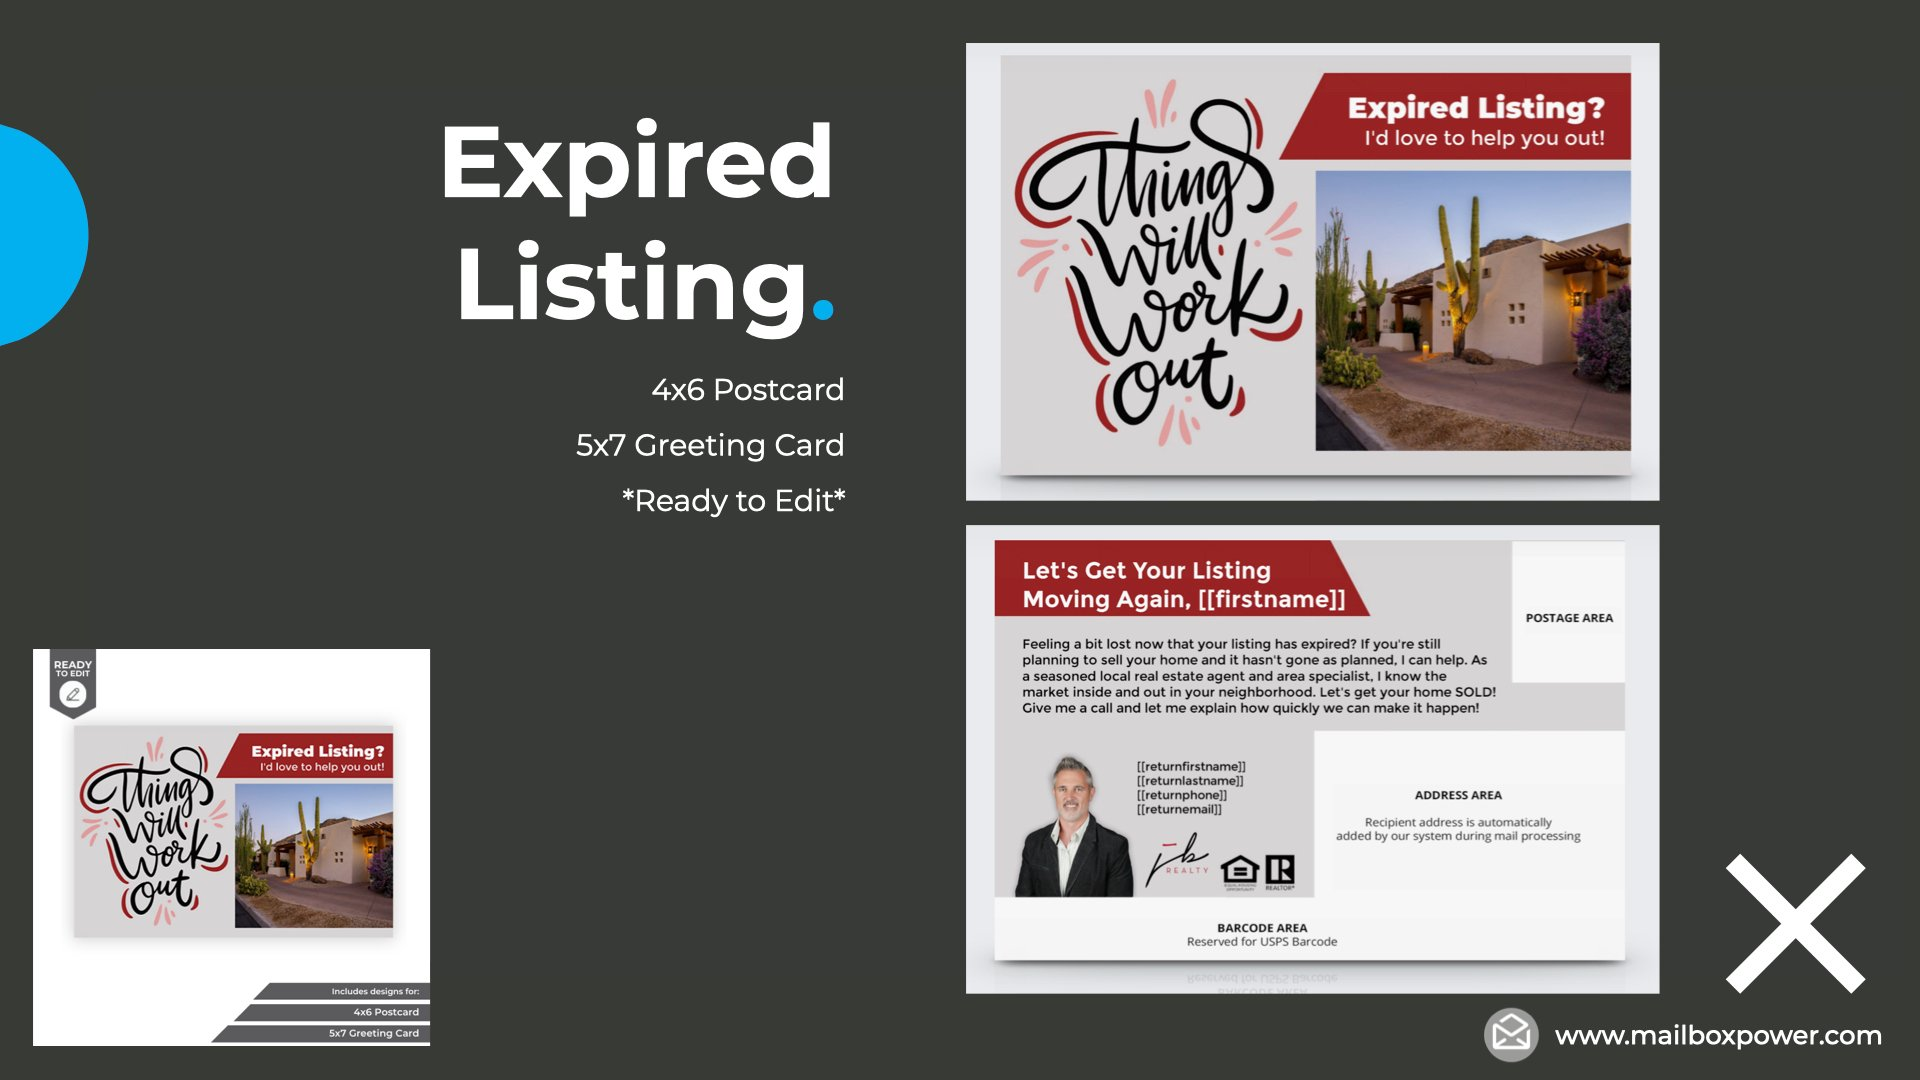 Expired Listings